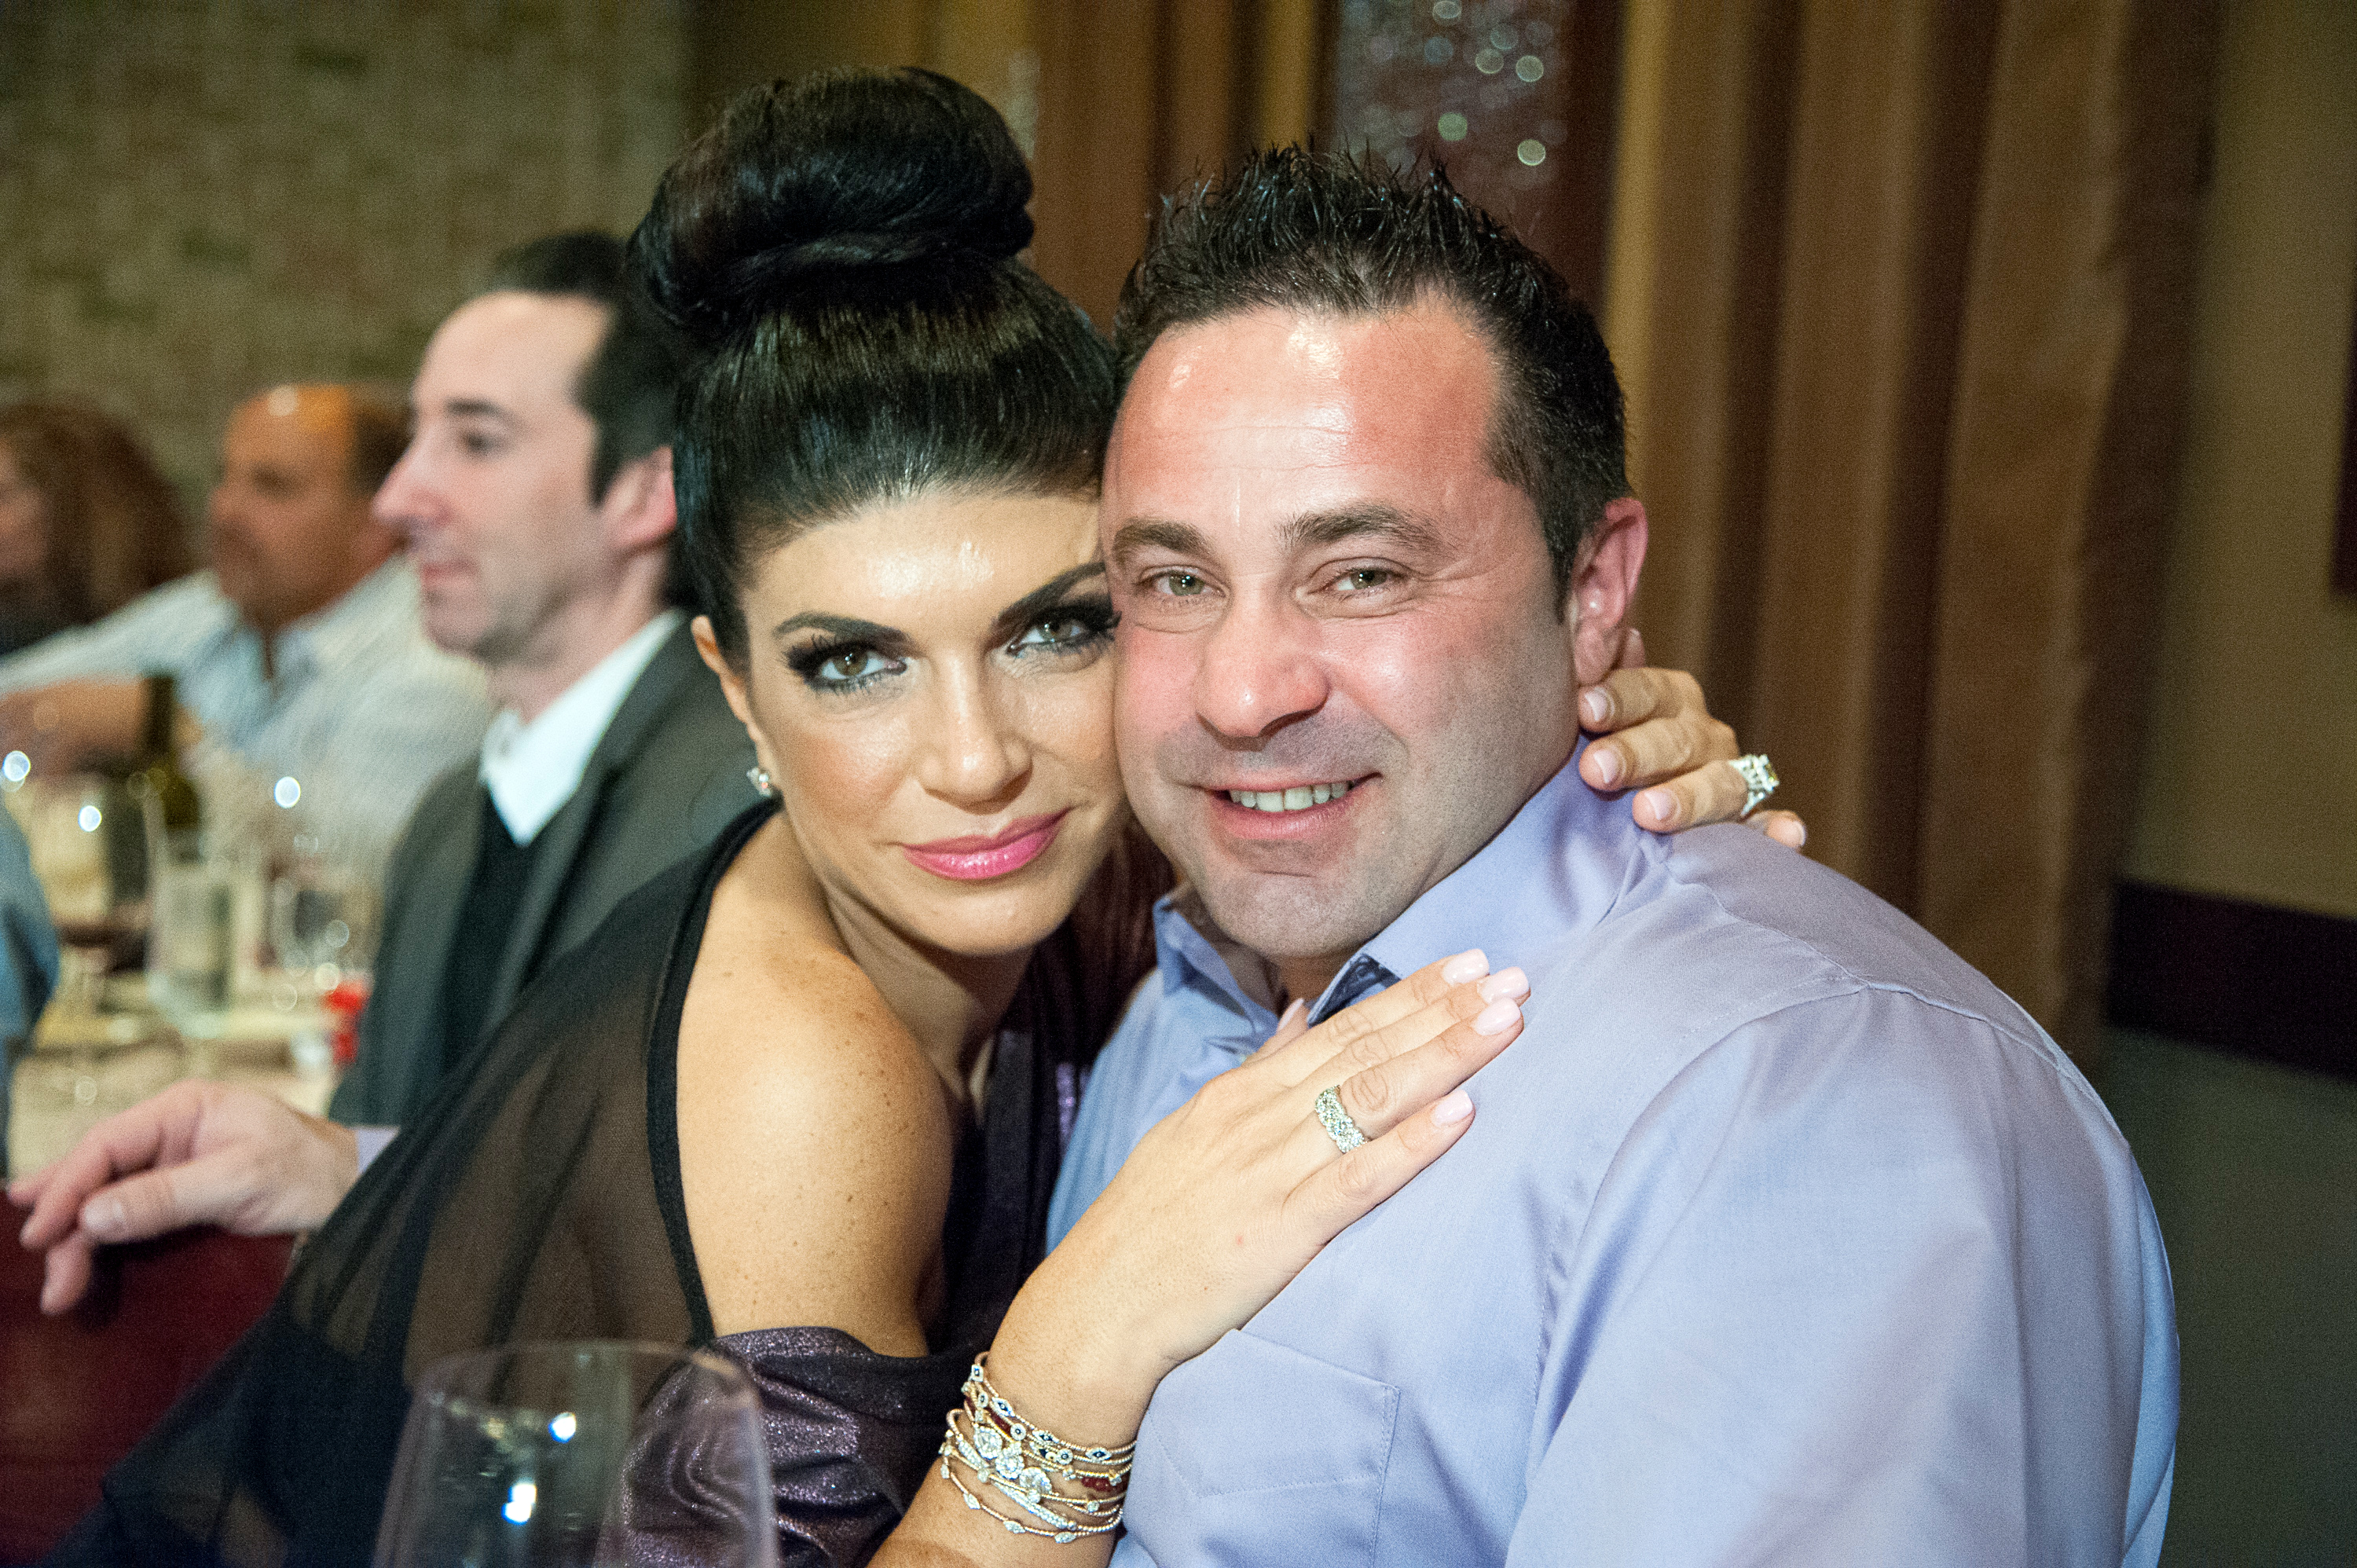 Teresa Giudice Says She's Not 'All About the Holidays' Since Husband Joe Giudice Is in Jail - Teresa Giudice and Joe Giudice attend the Posche Fashion show at The Bottagra on December 3, 2012 in Hawthorne, New Jersey.